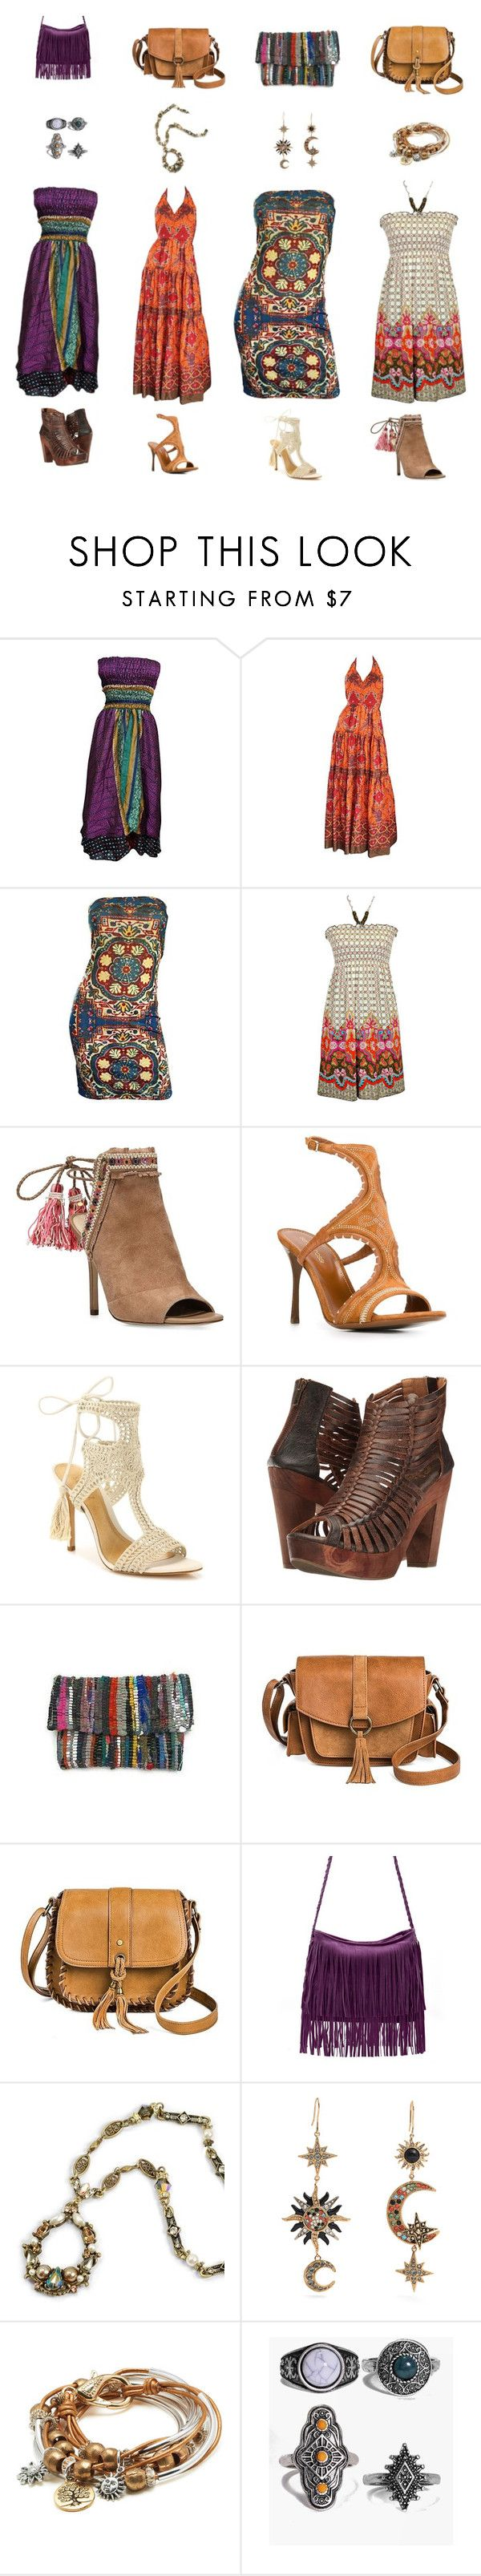 """Untitled #431"" by susy-1697 ❤ liked on Polyvore featuring Frank Usher, Todd Oldham, jon & anna, Sam Edelman, Sergio Rossi, Schutz, Sbicca, T-shirt & Jeans, Sweet Romance and Roberto Cavalli"